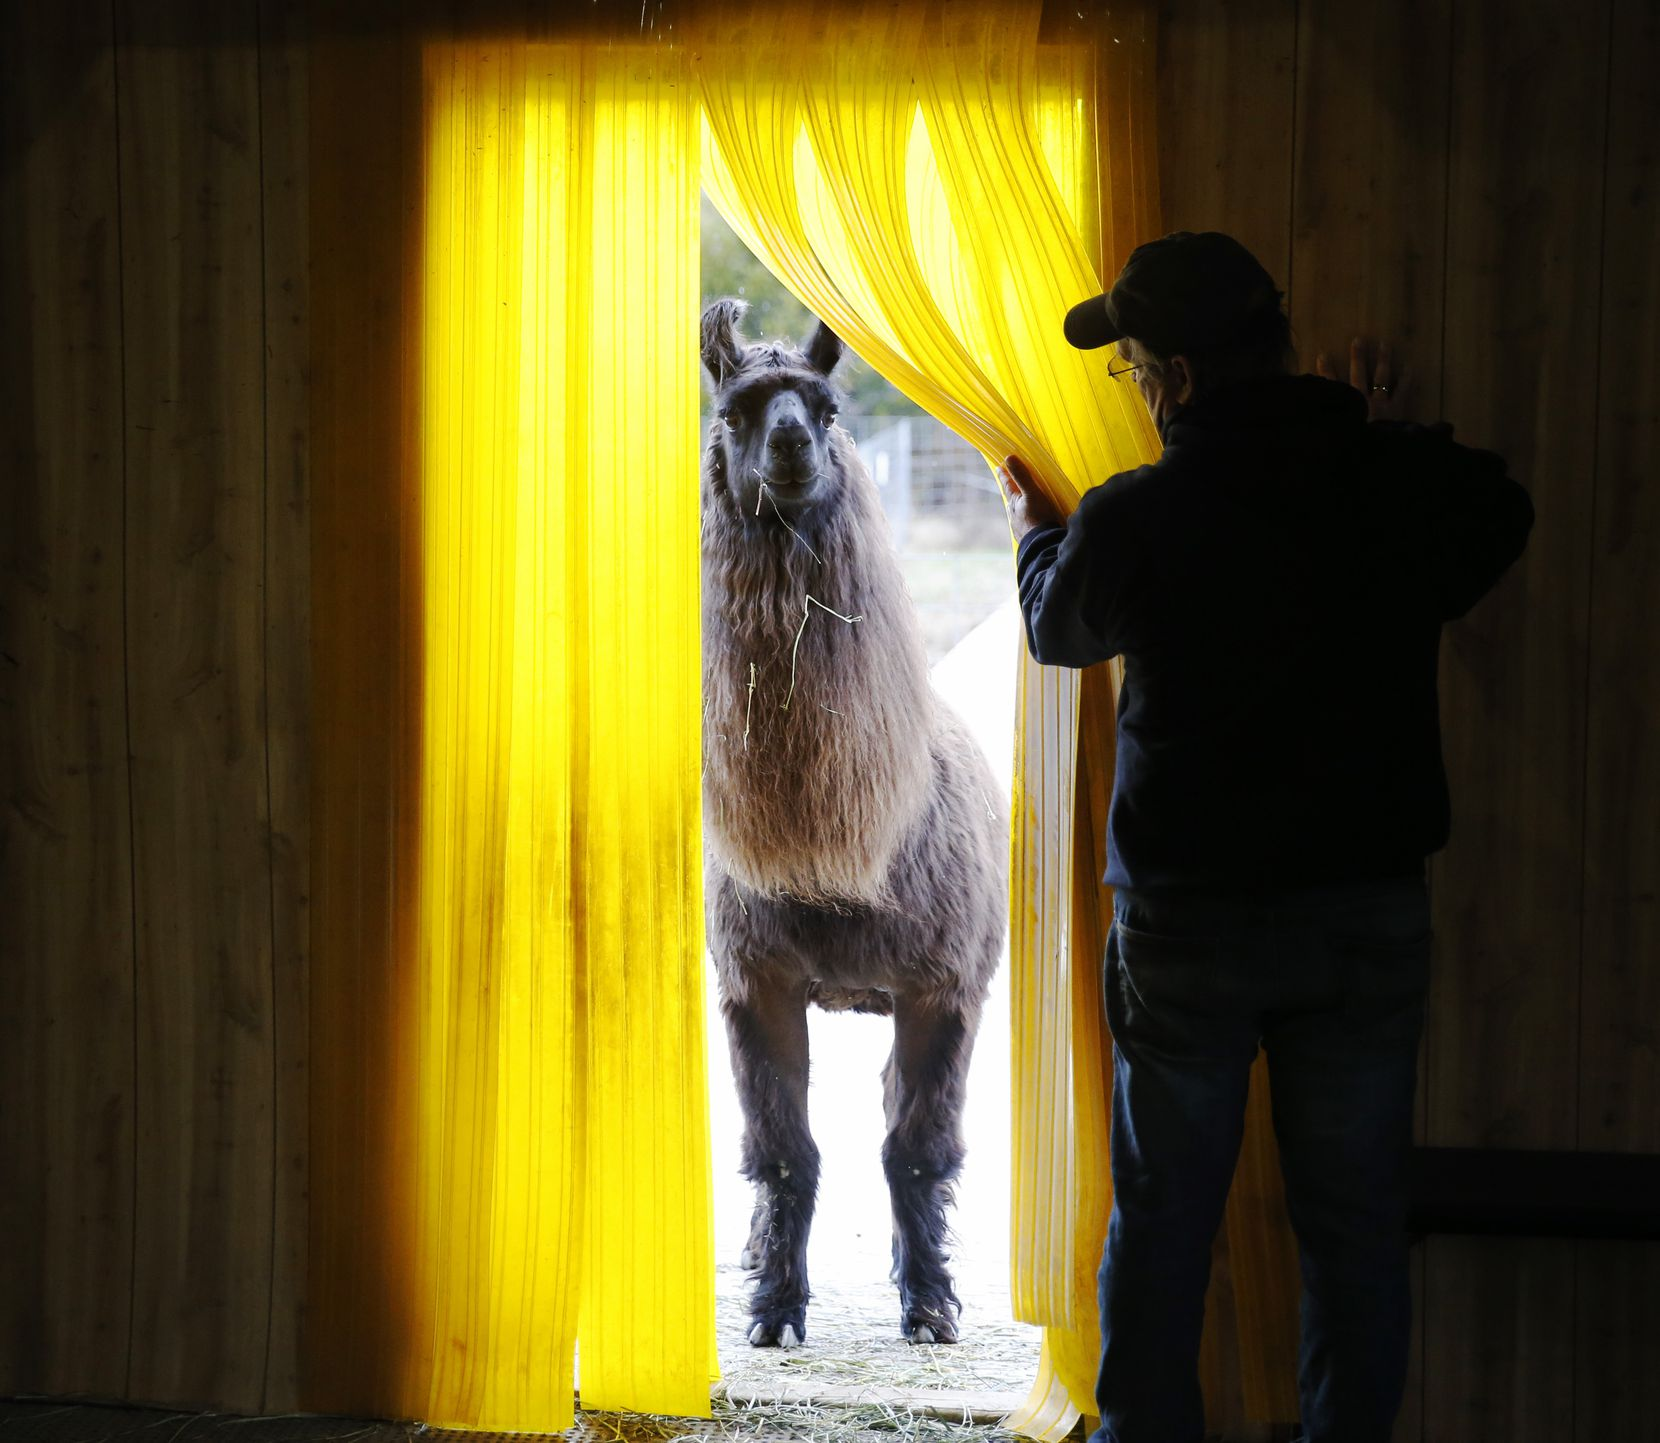 Barack O'Llama prepared to enter the barn as Paul Brucato assisted at ShangriLlama Castle in Royse City in February. The facility offers a variety of activities, including llama walks, llama lessons and castle-themed weddings.